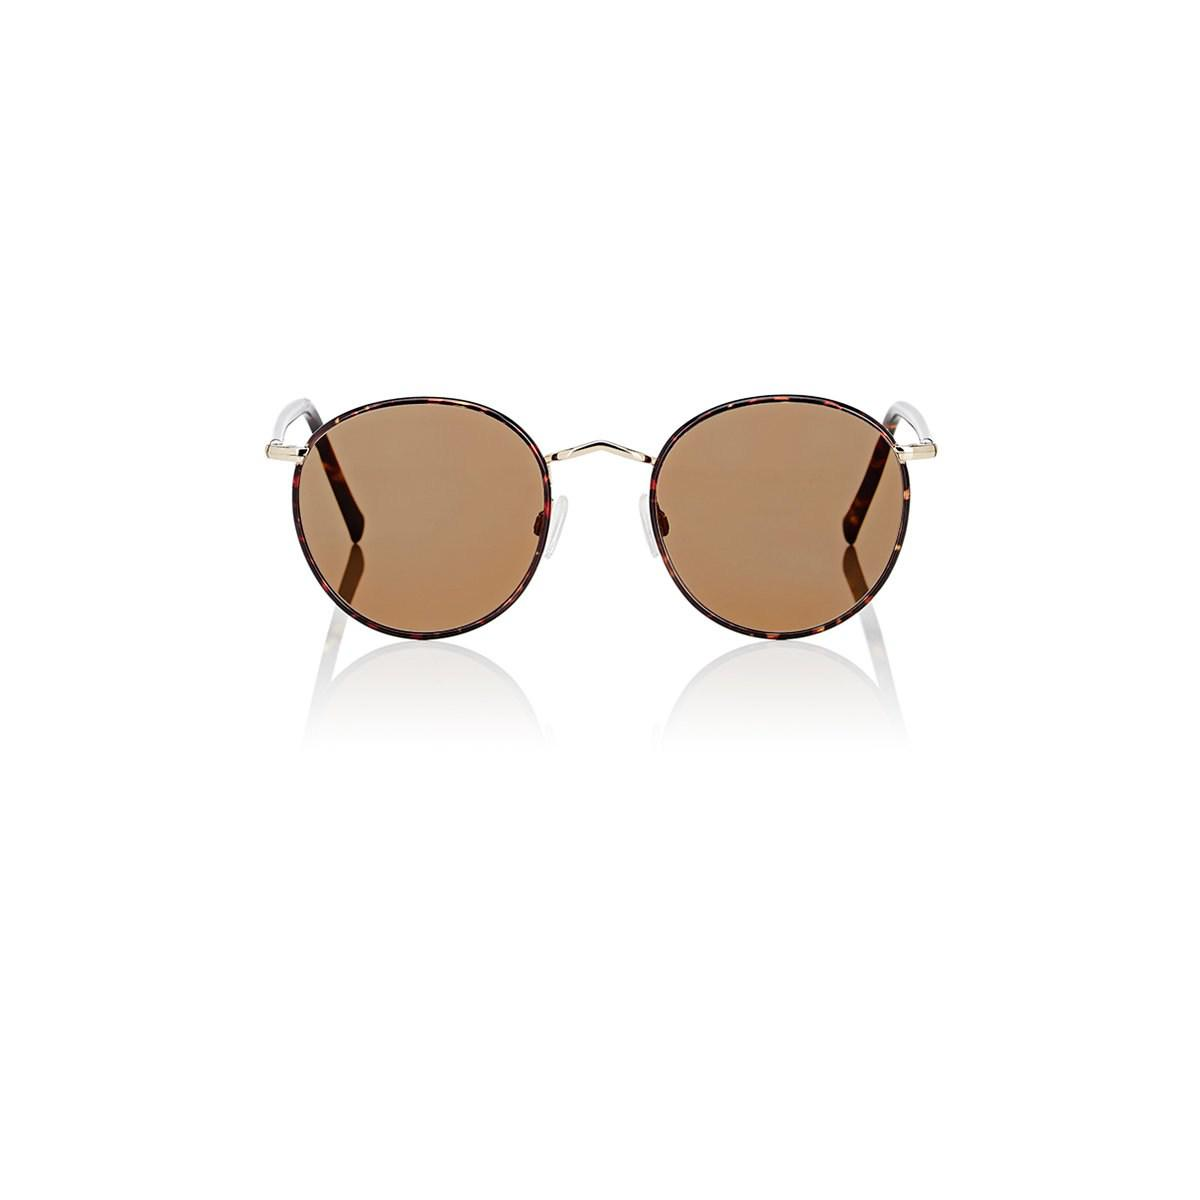 ac21b7ad5fca3 Moscot Zev Sunglasses in Brown for Men - Lyst